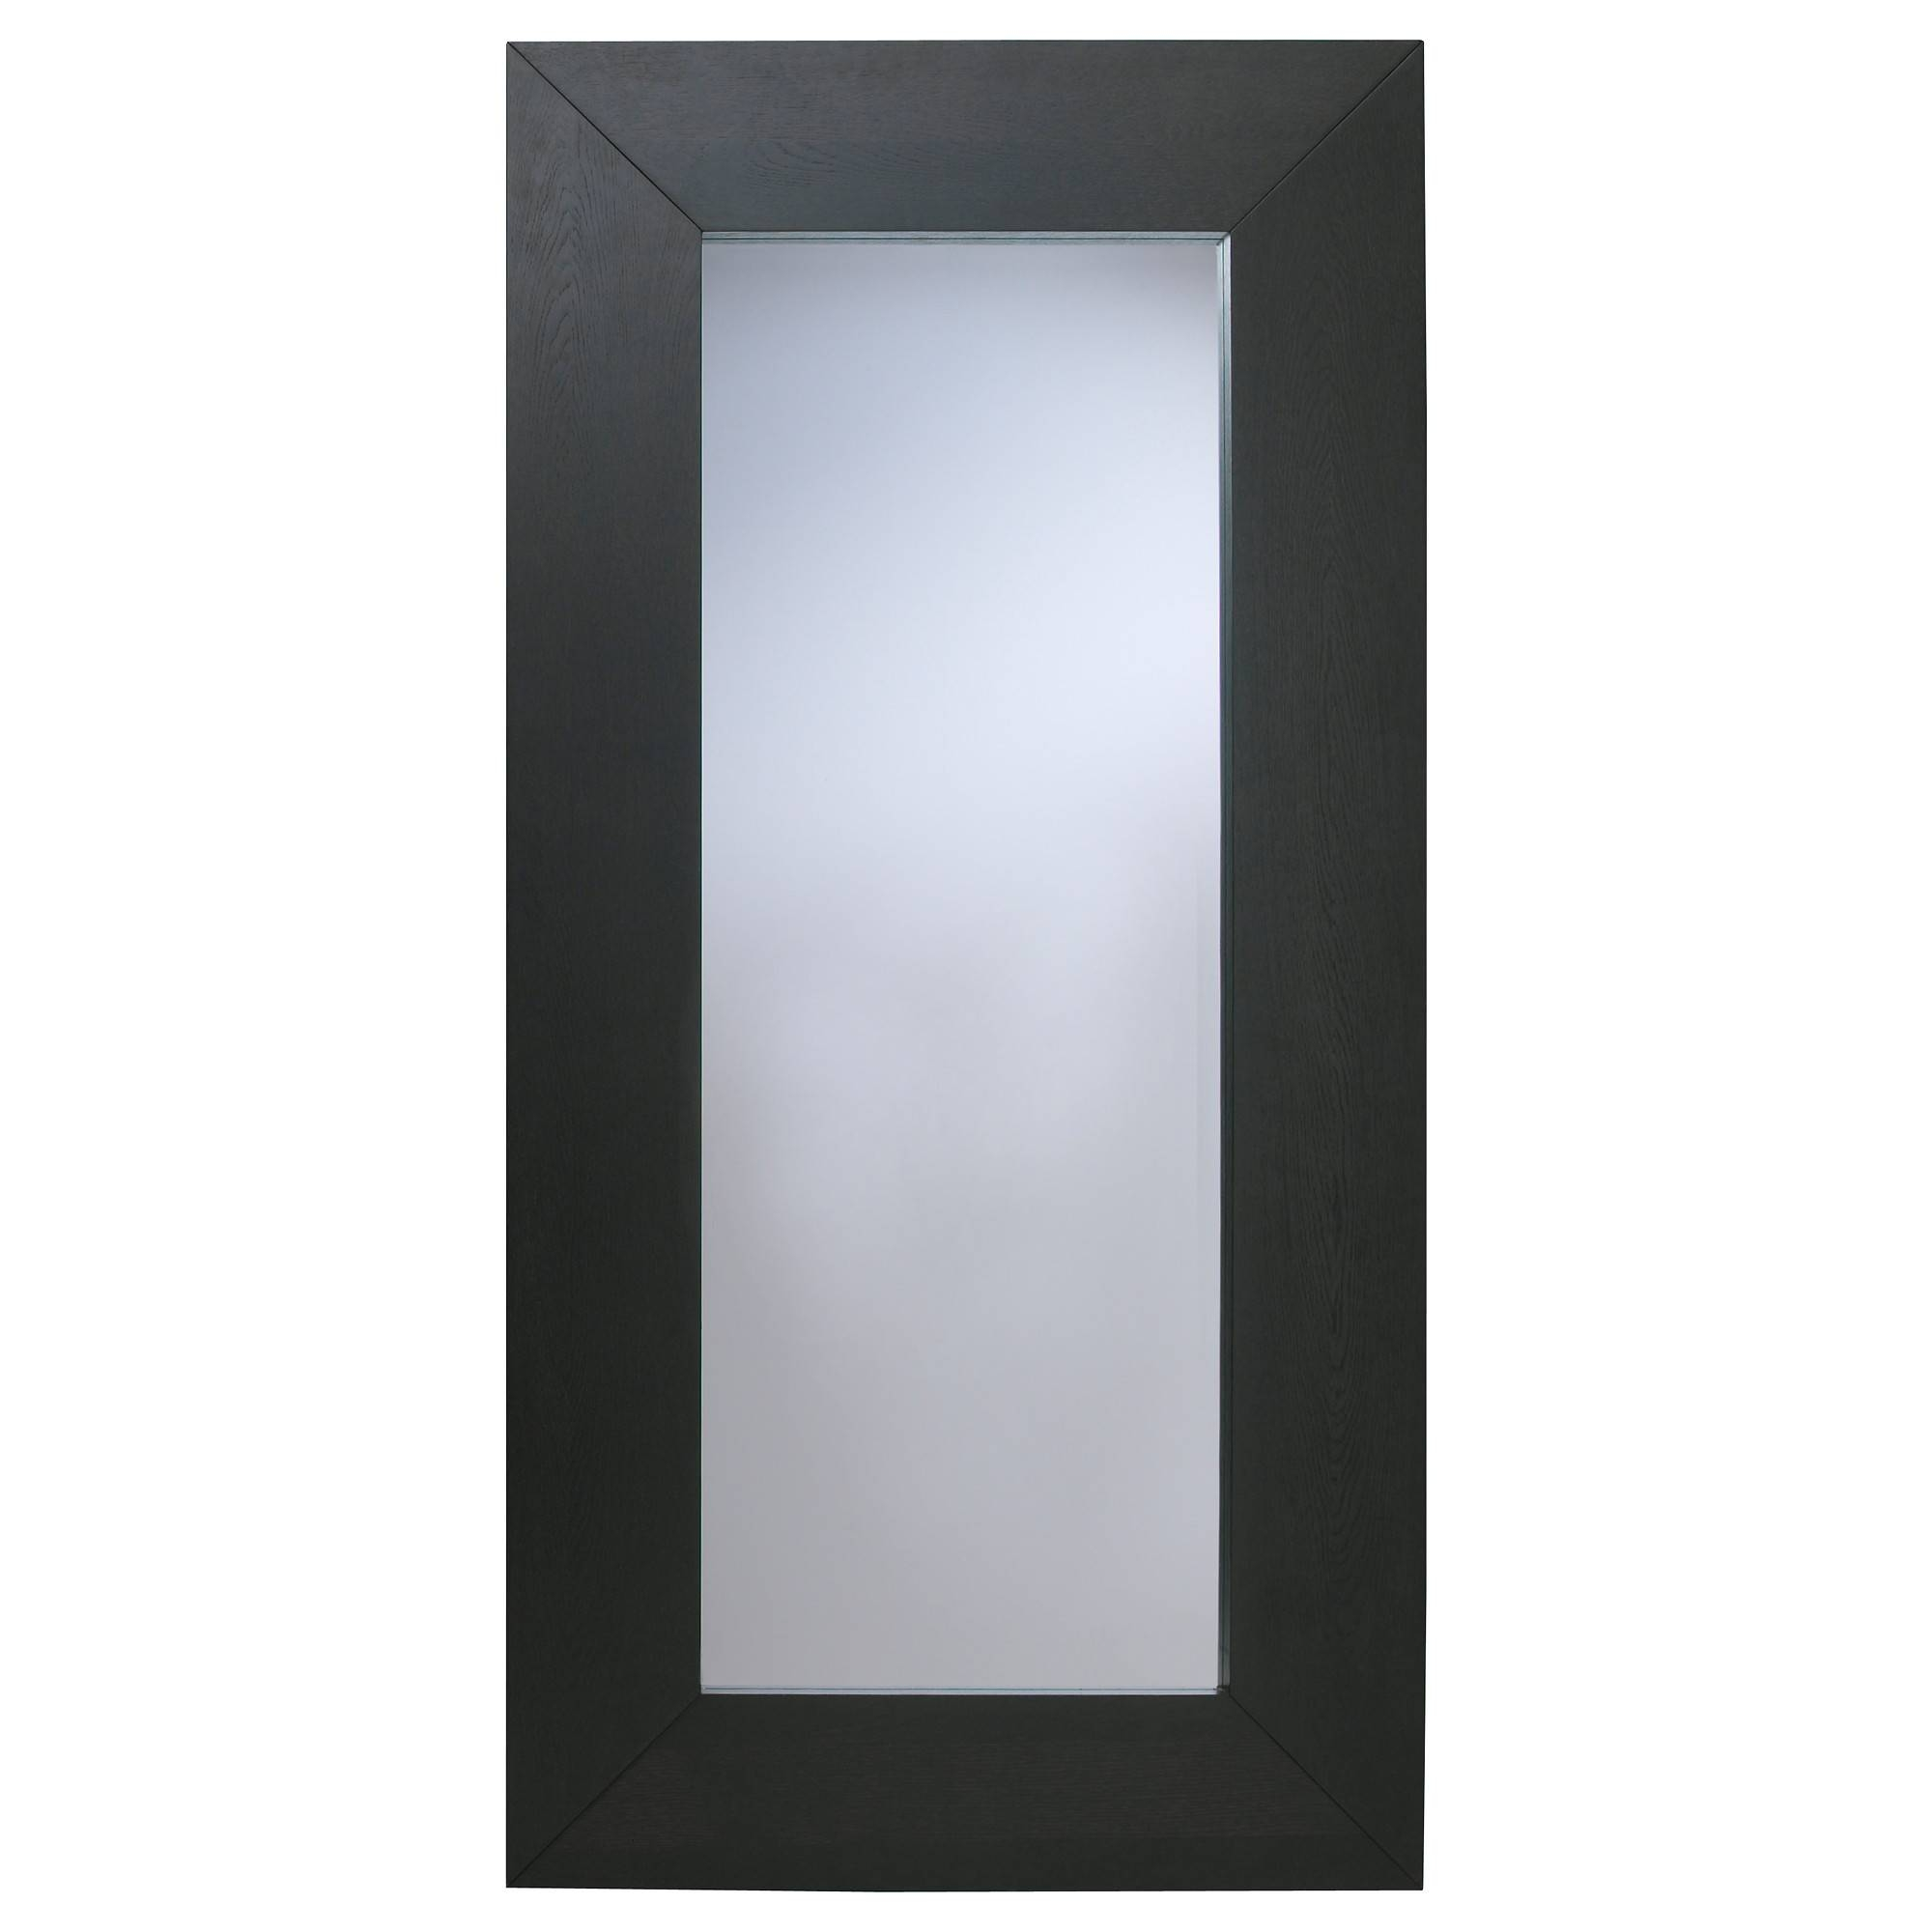 Wall Mirrors - Ikea pertaining to Huge Full Length Mirrors (Image 25 of 25)